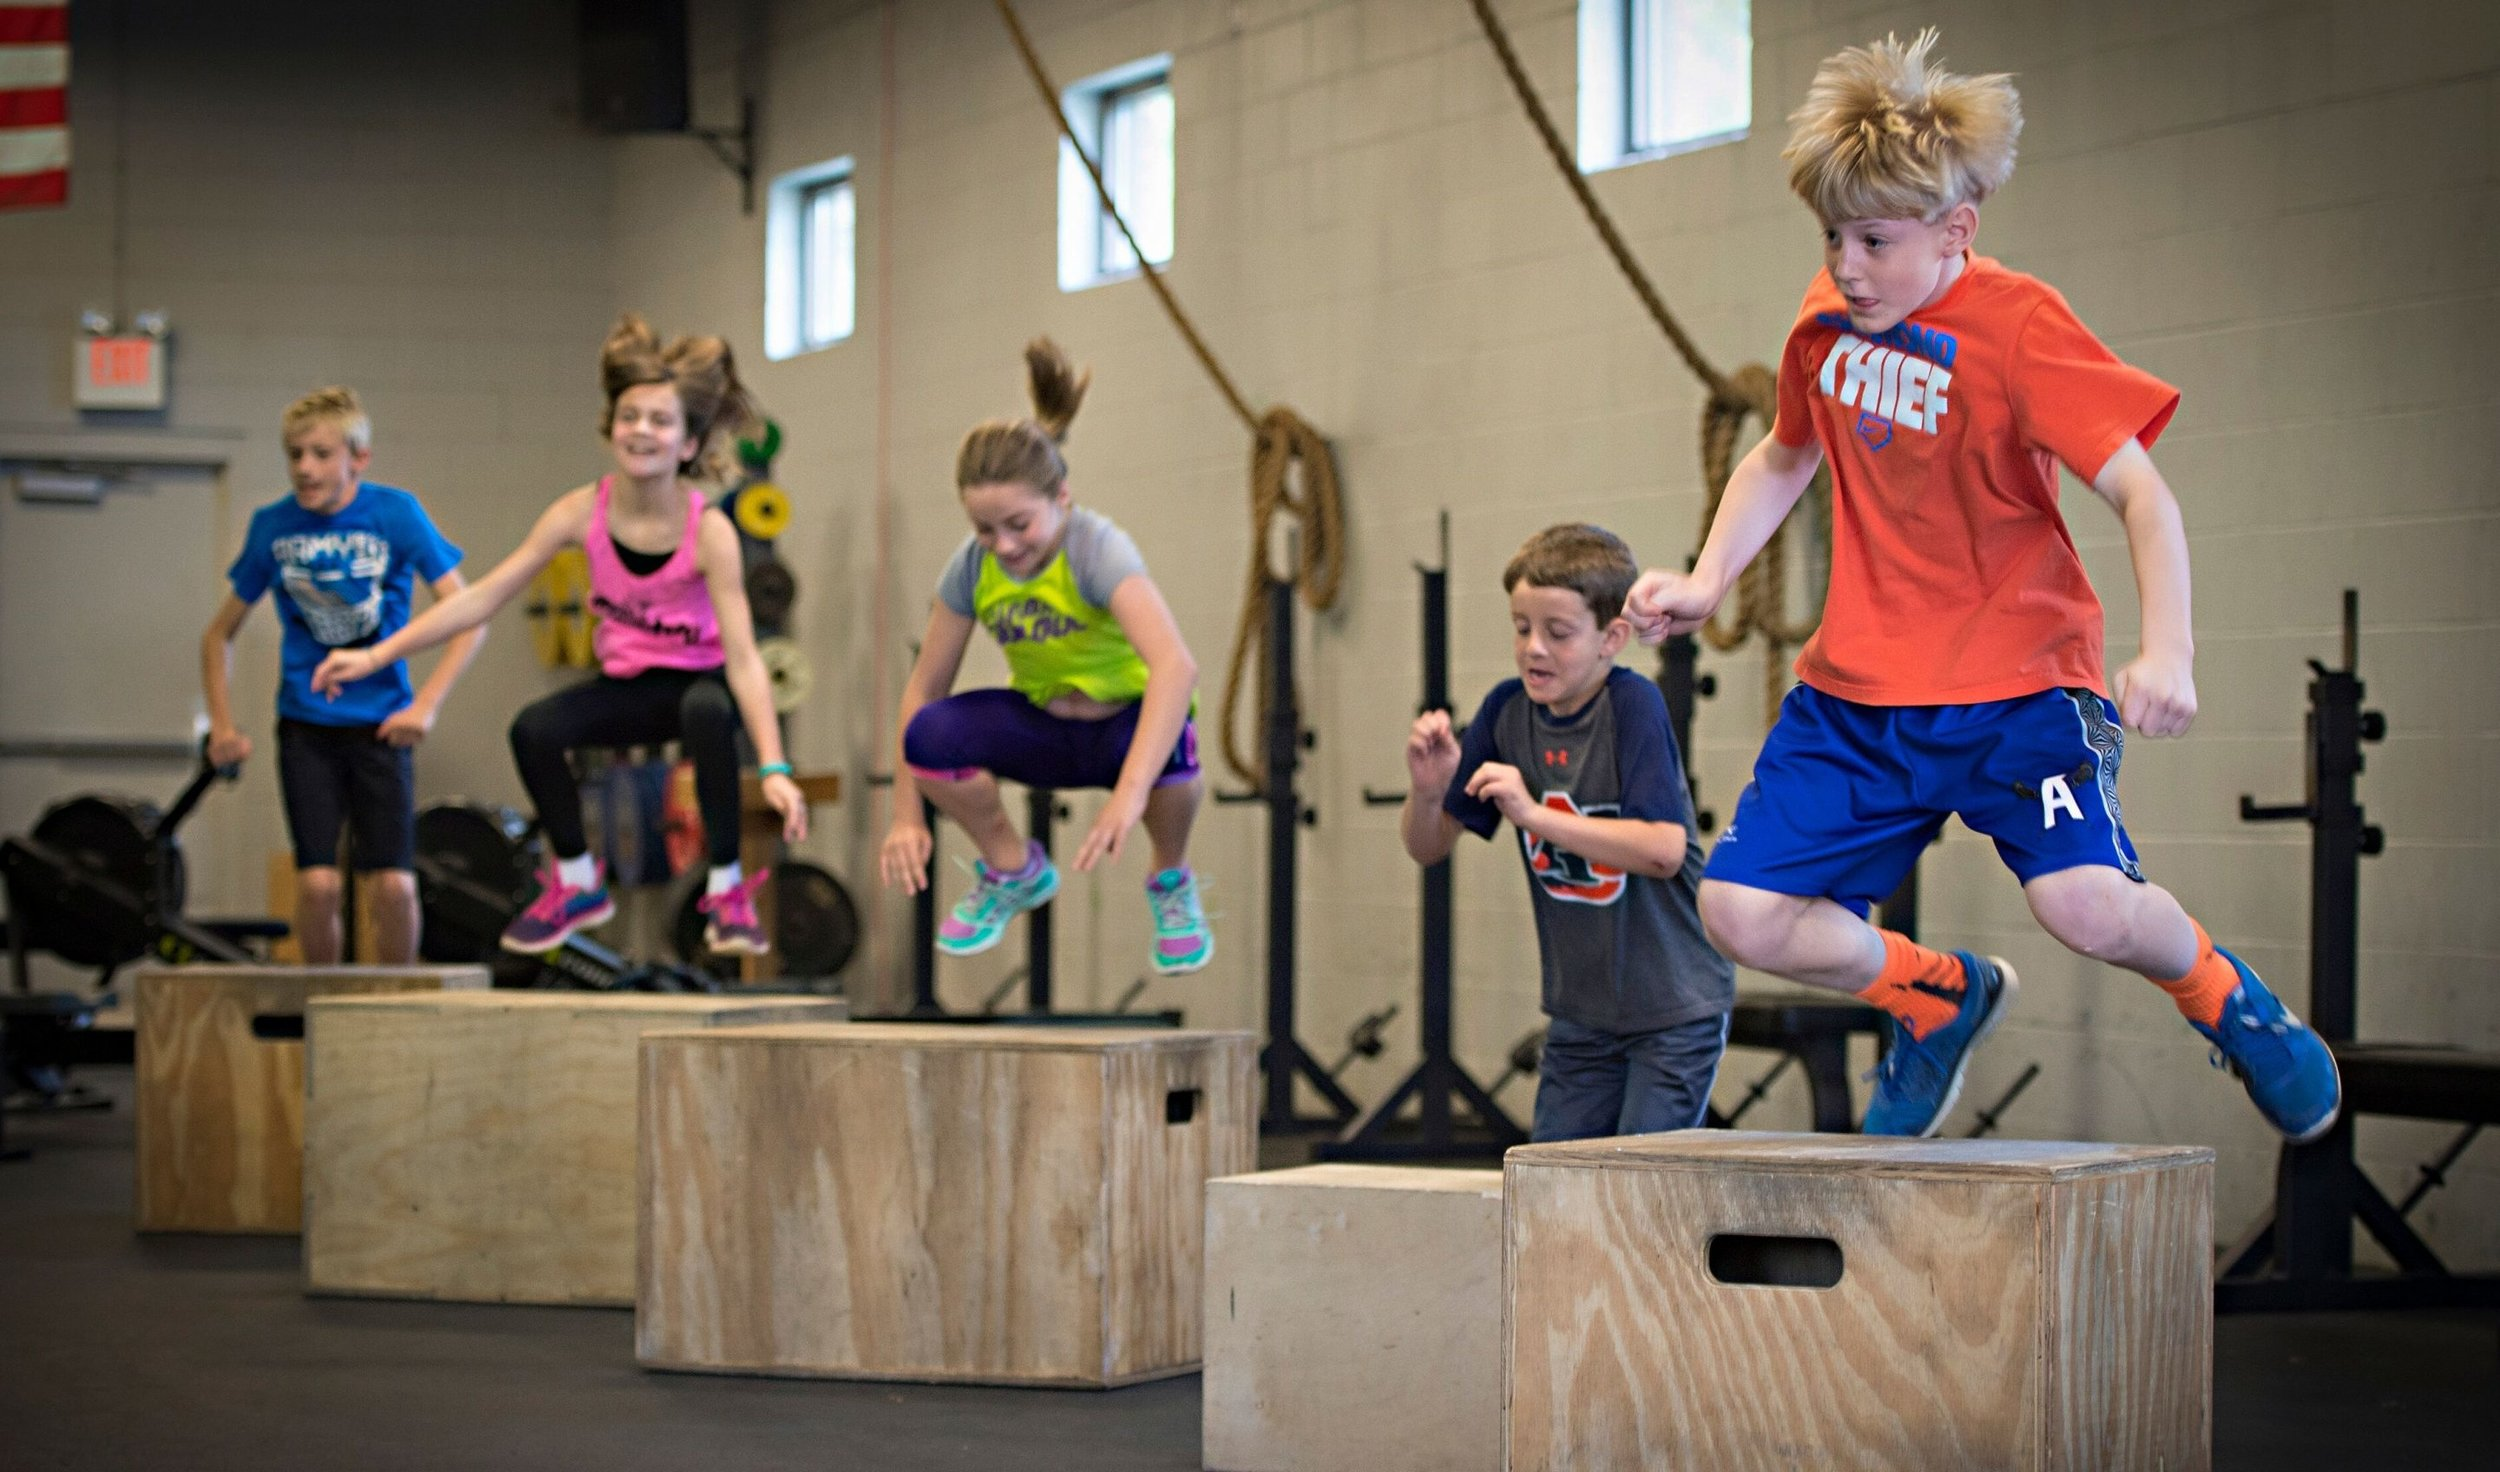 CrossFit Kids - Teaching that fitness can be fun! CrossFit Kids & Teens happens each summer for the months of June & July. However, soon we will have it year round! Keep an eye out.